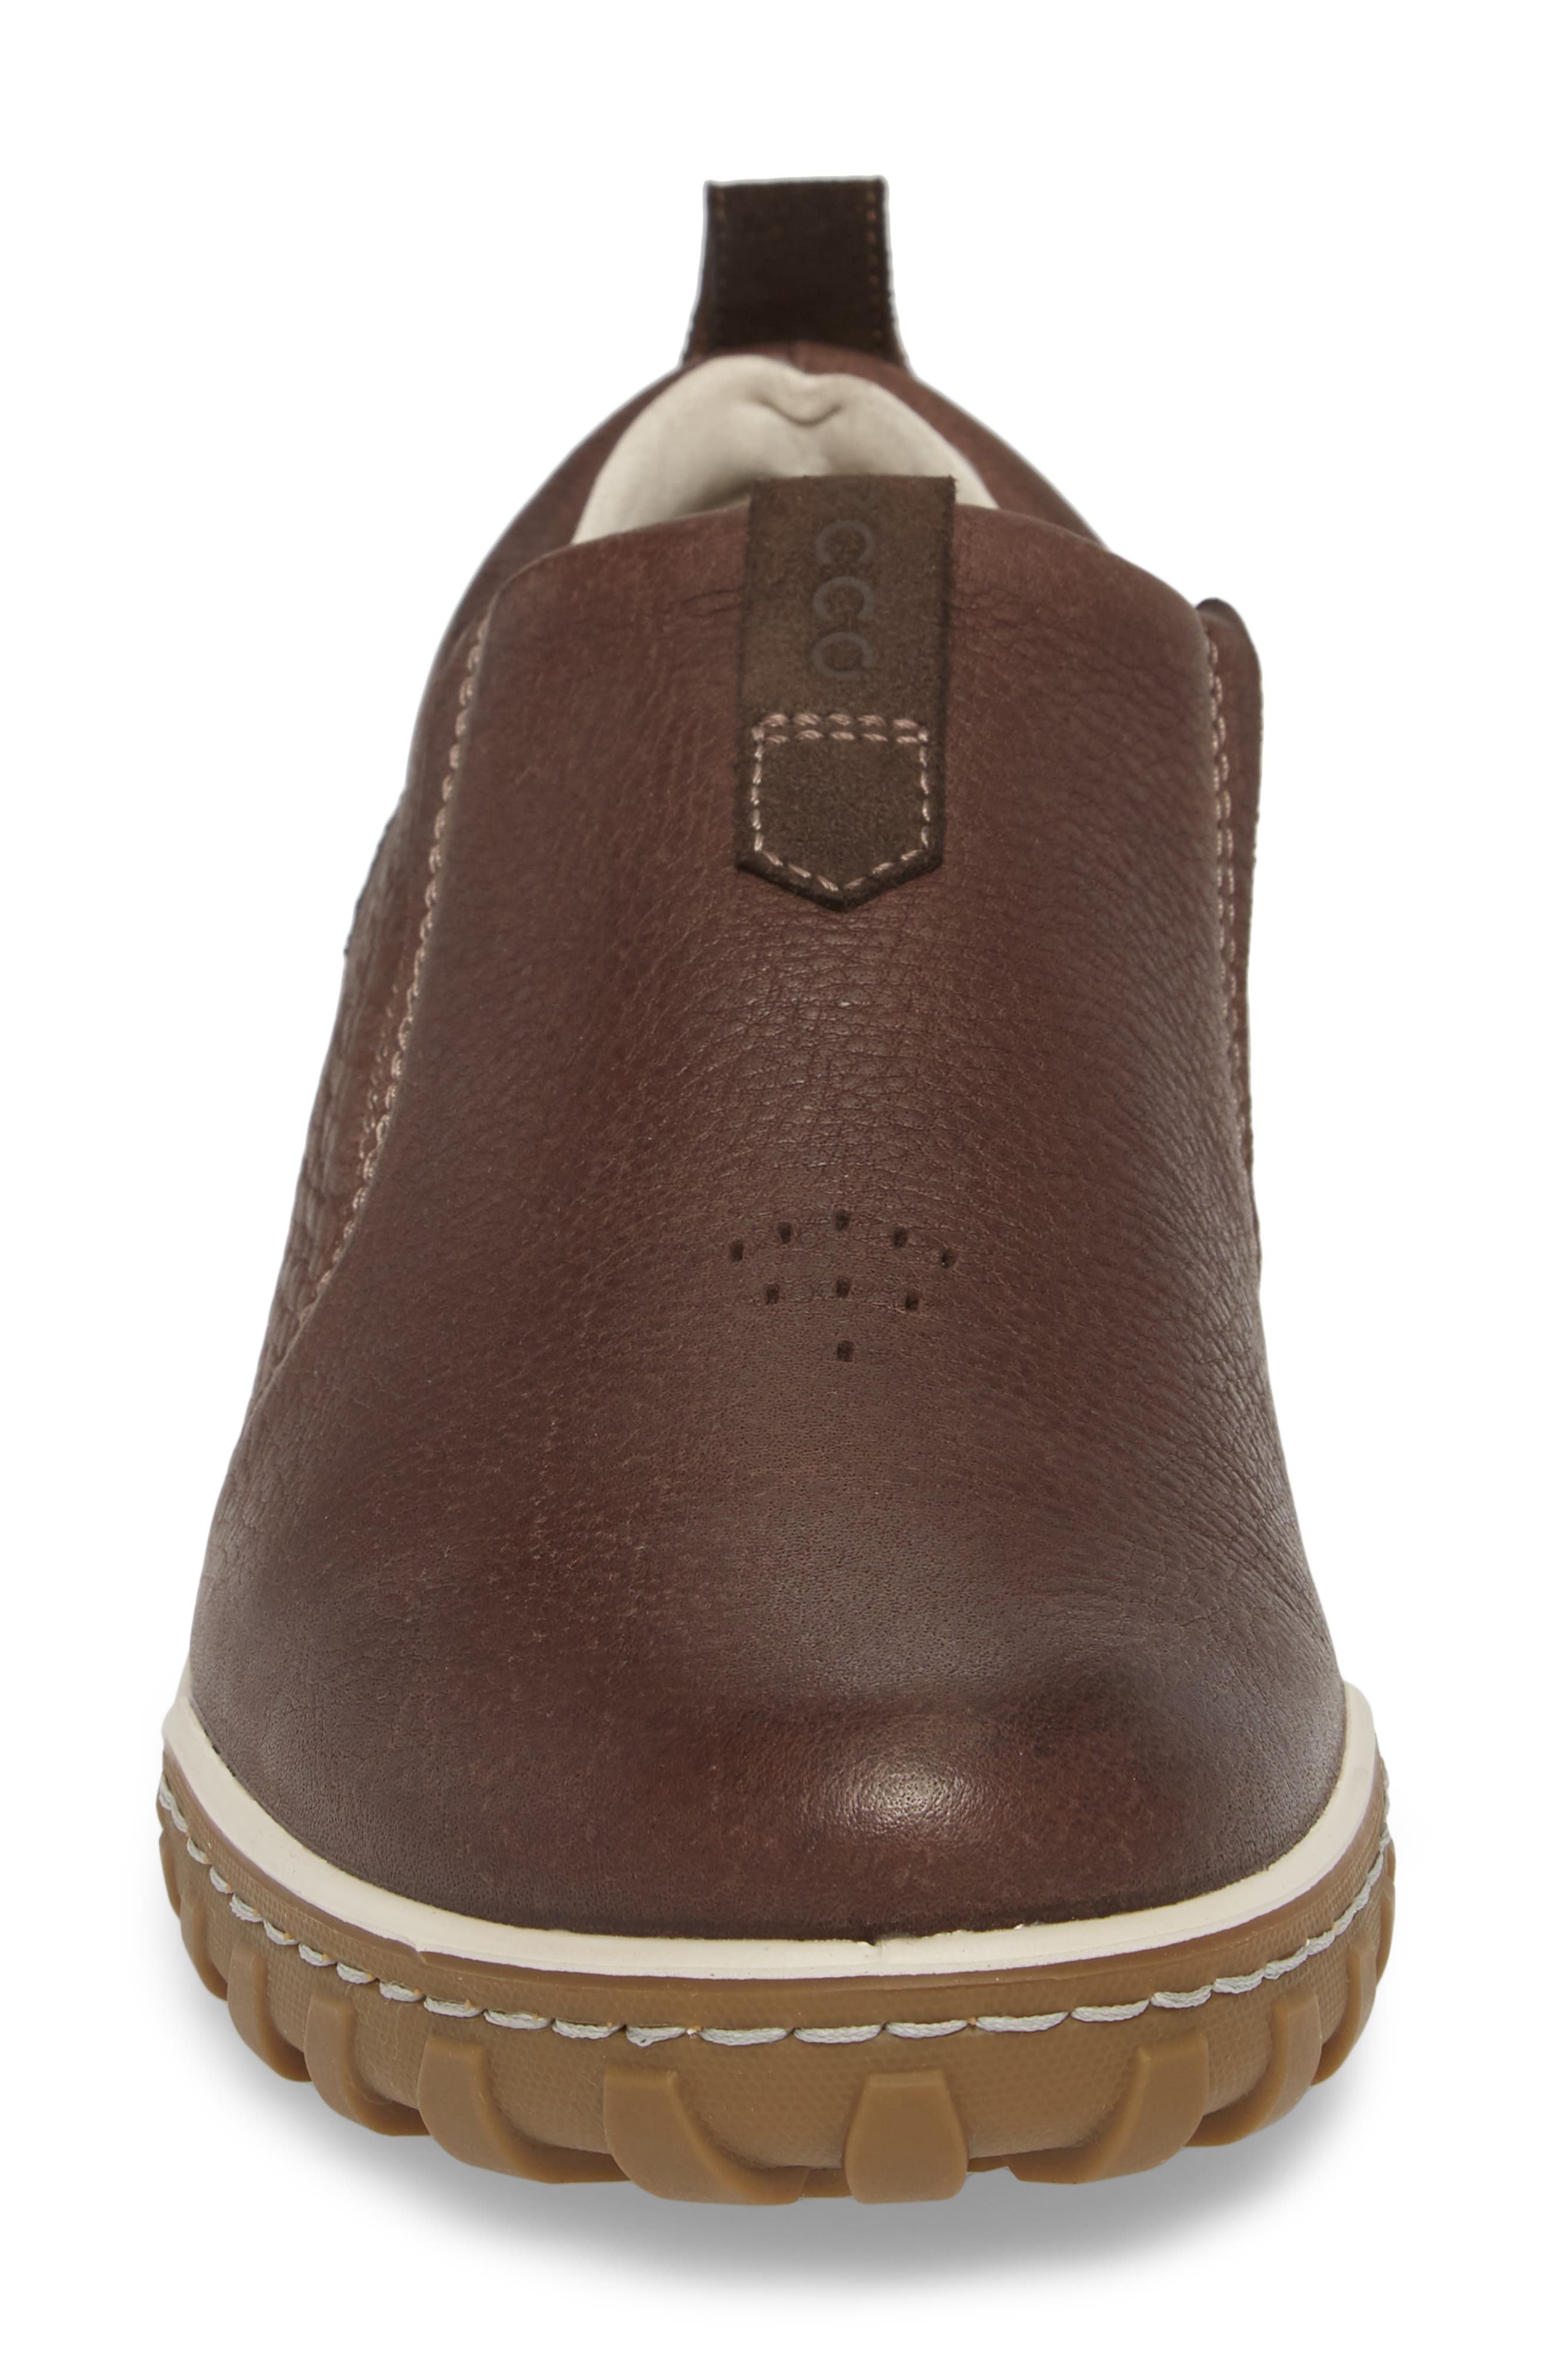 Urban Lifestyle Slip-On Sneaker,                             Alternate thumbnail 4, color,                             Coffee Leather